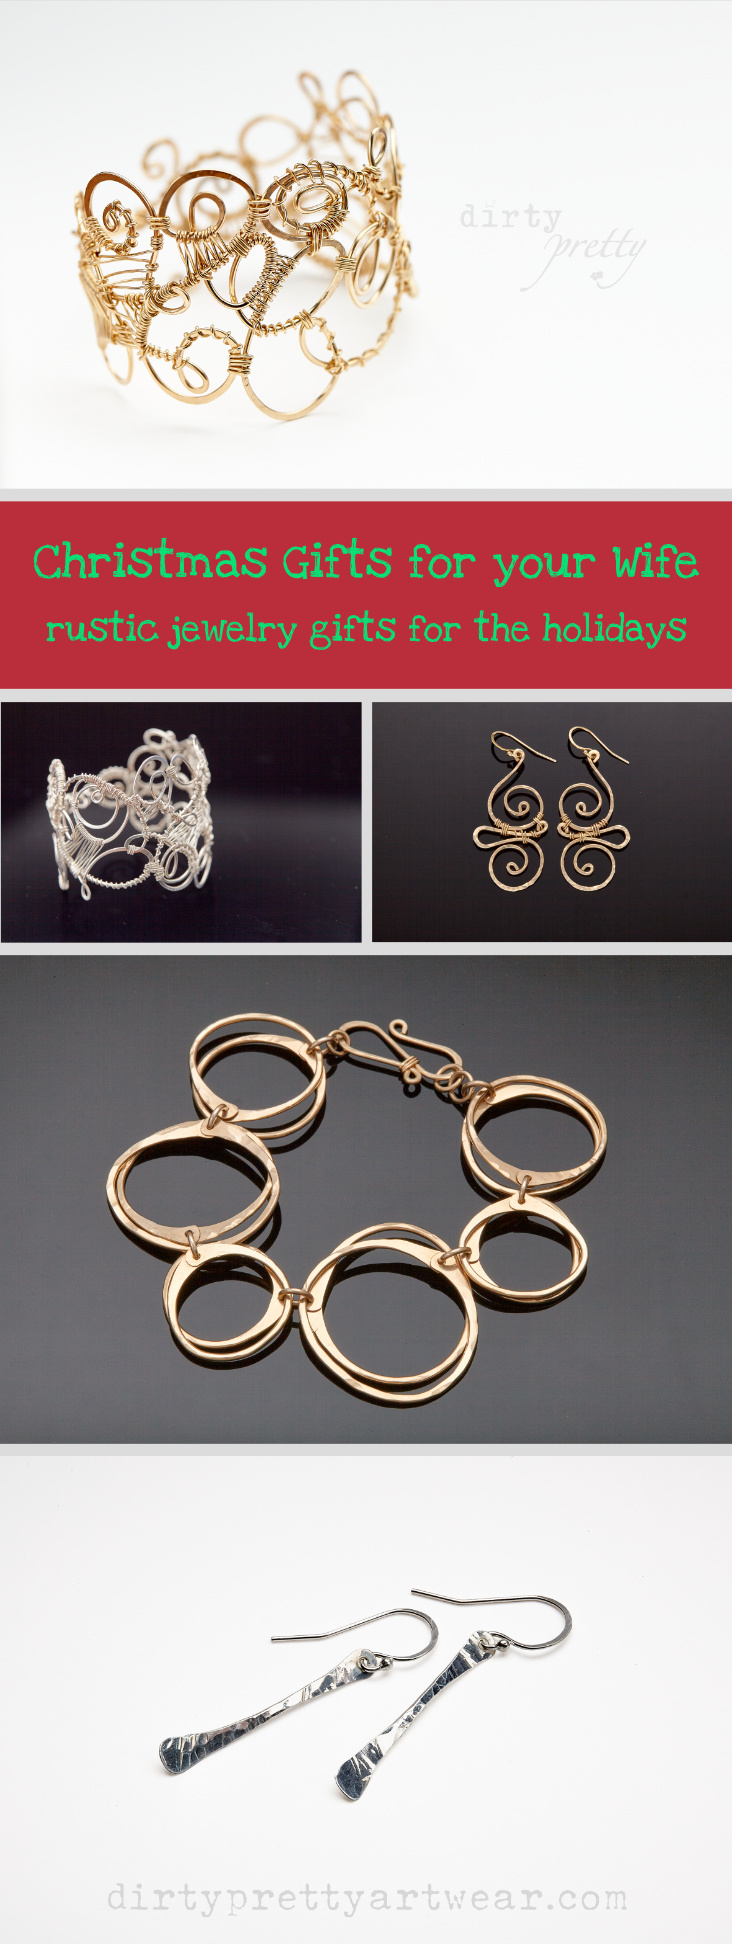 Christmas Gifts for Wife | rustic jewelry gifts for the holidays ...